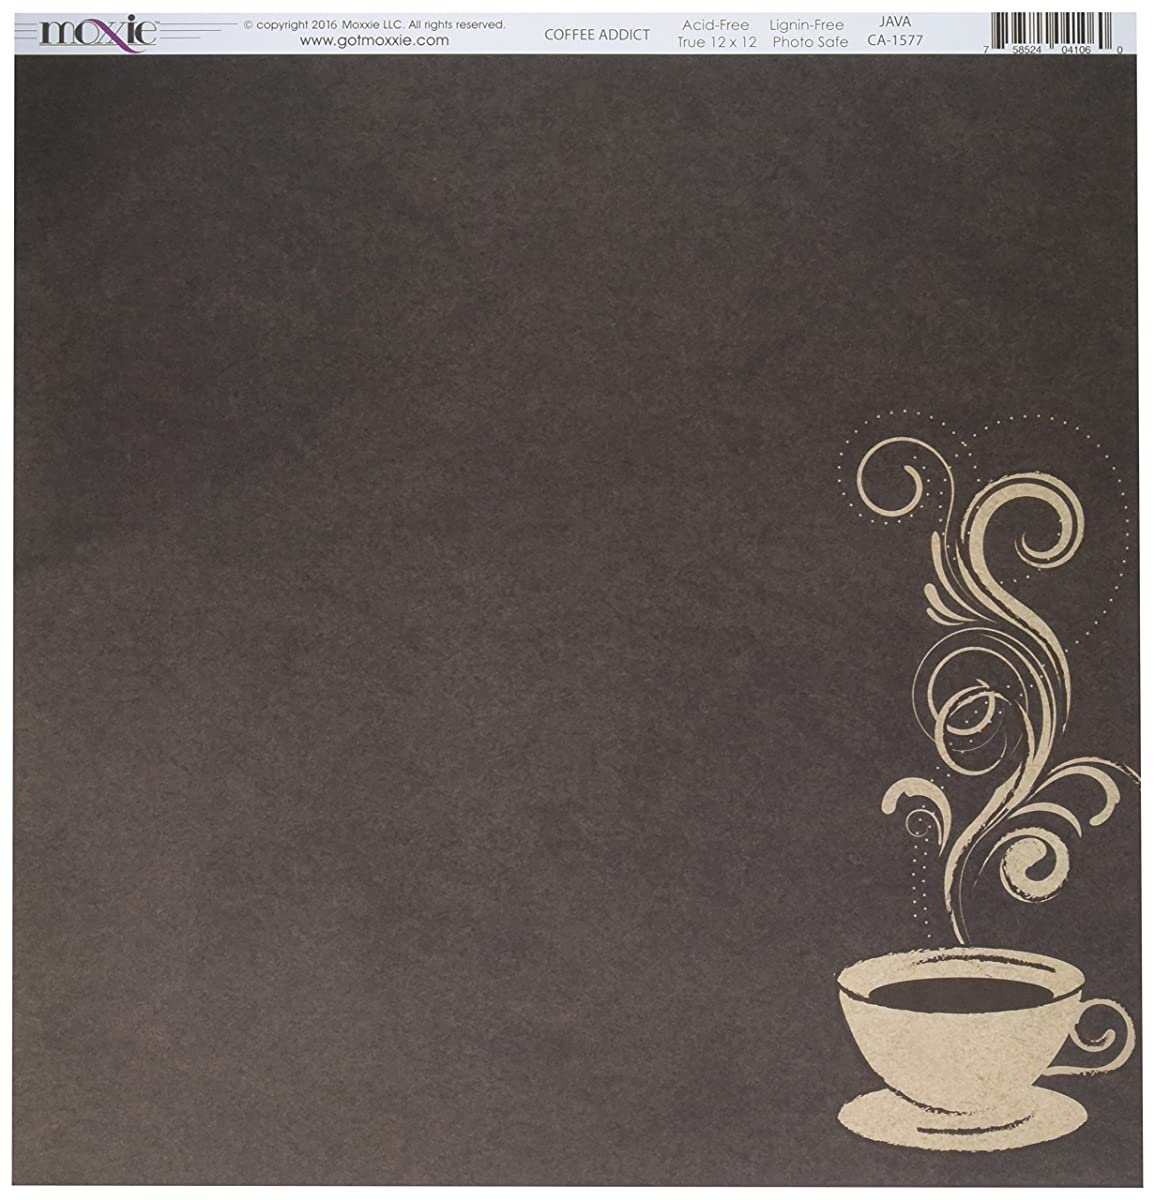 Moxxie CA-1577 25 Sheet Java Coffee Addict Double-Sided Cardstock, 12